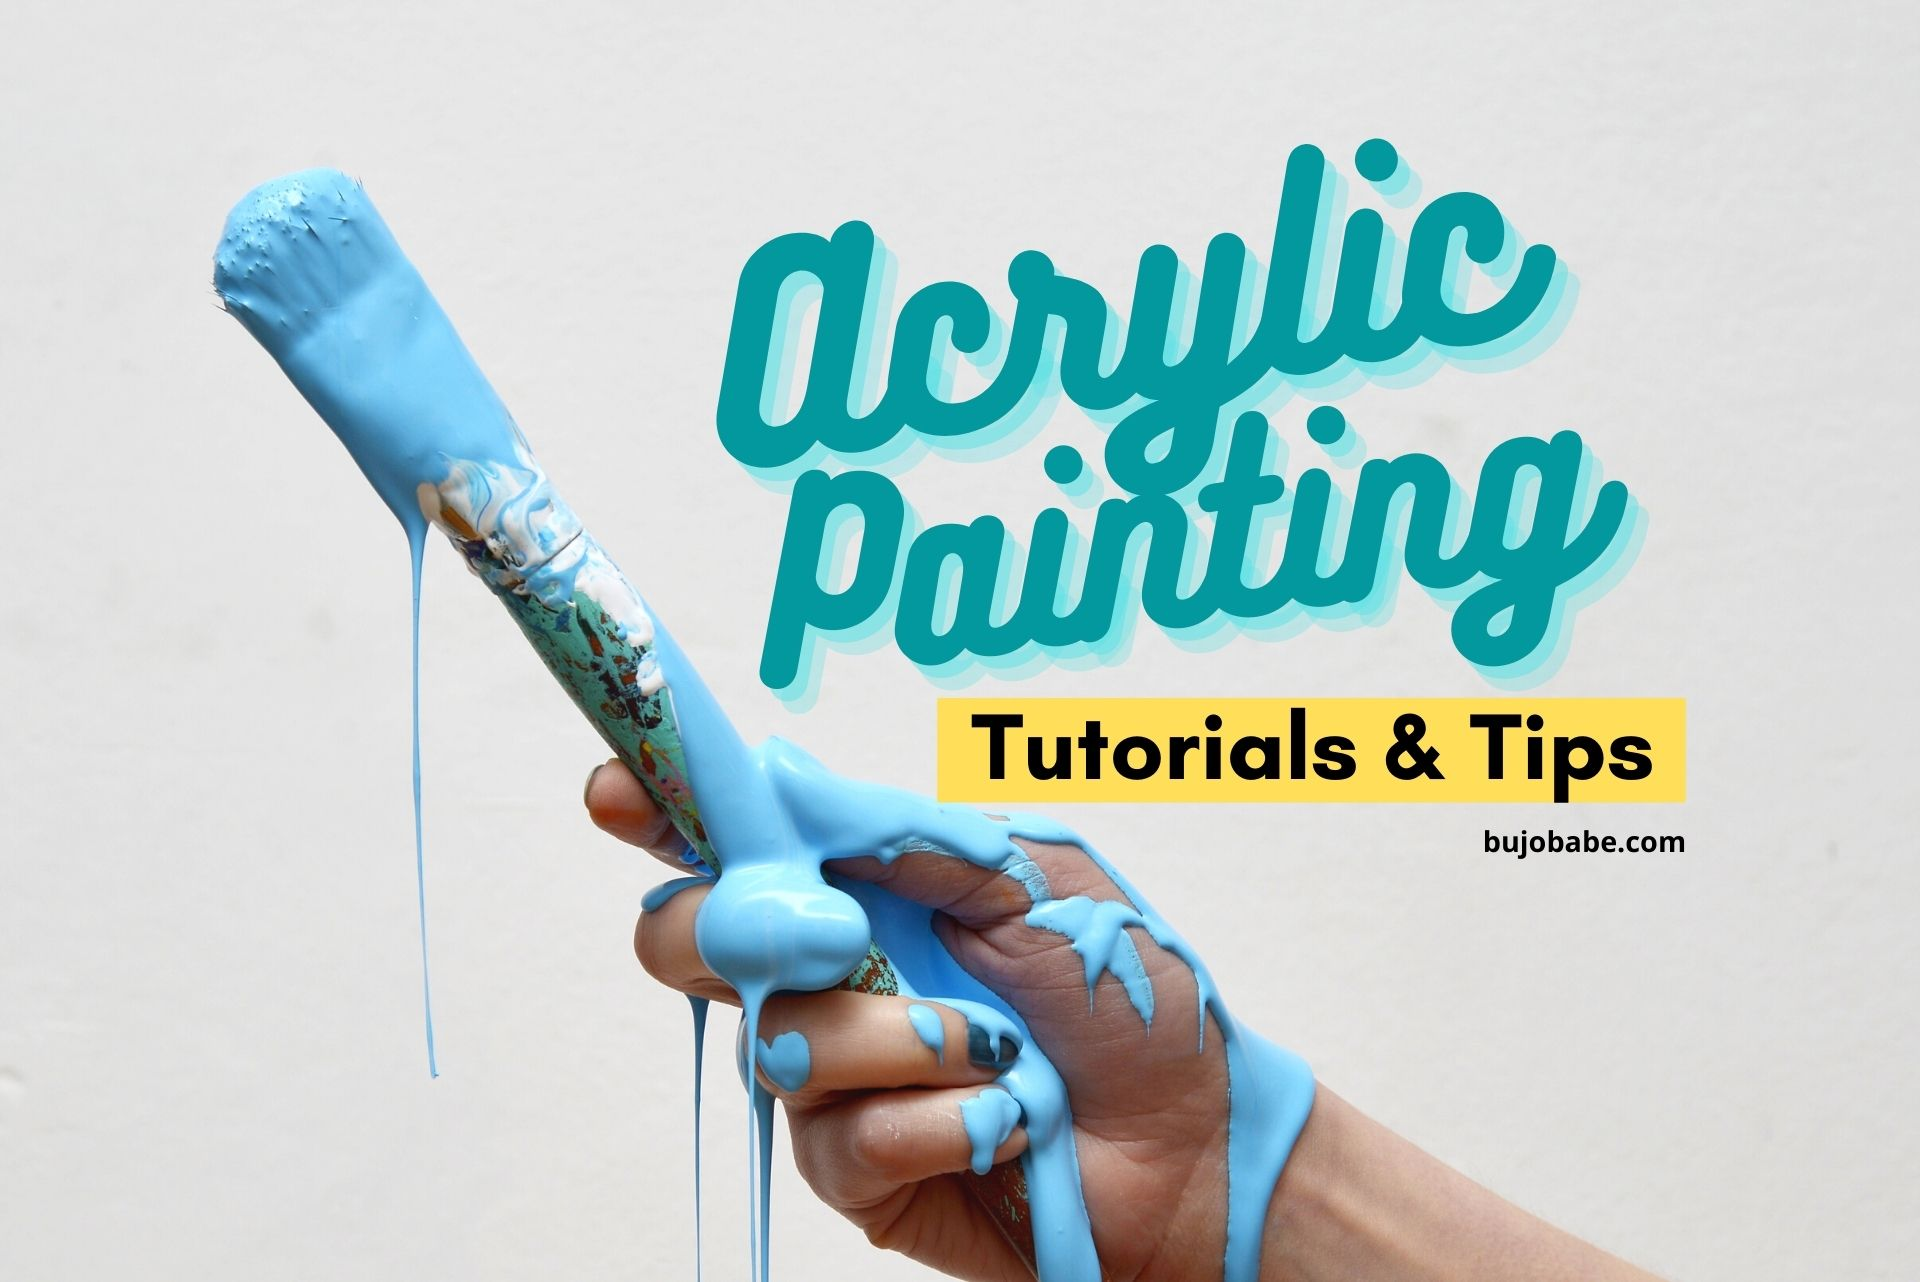 acrylic painting tutorials and tips for beginners